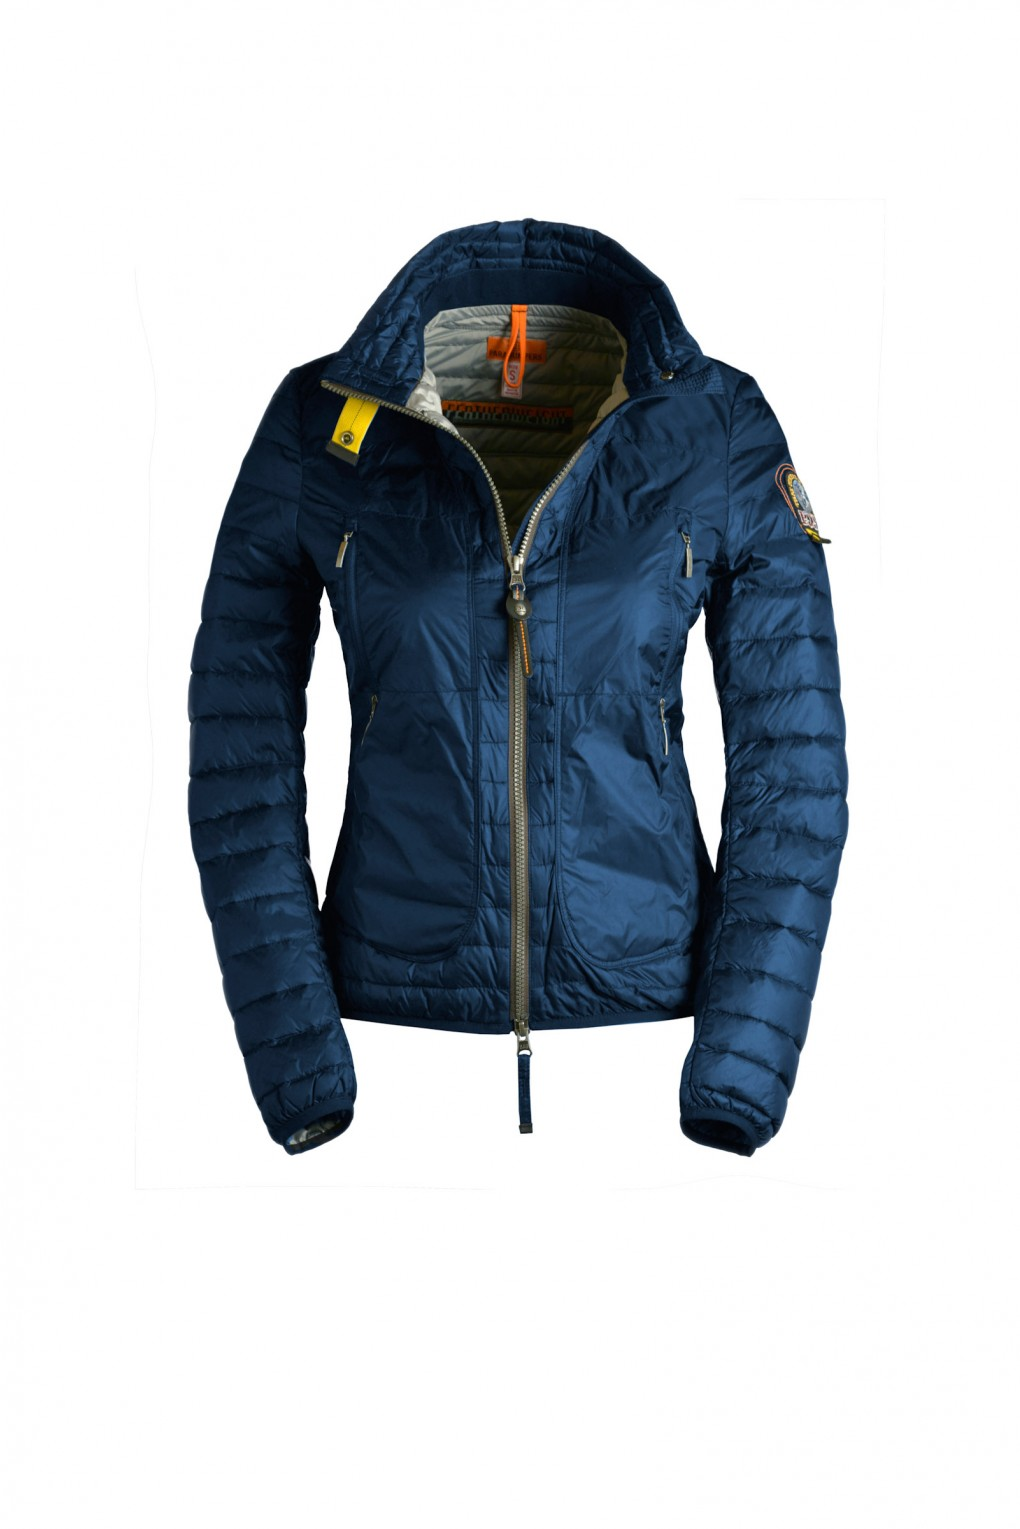 parajumpers GLORIA woman outerwear Ocean